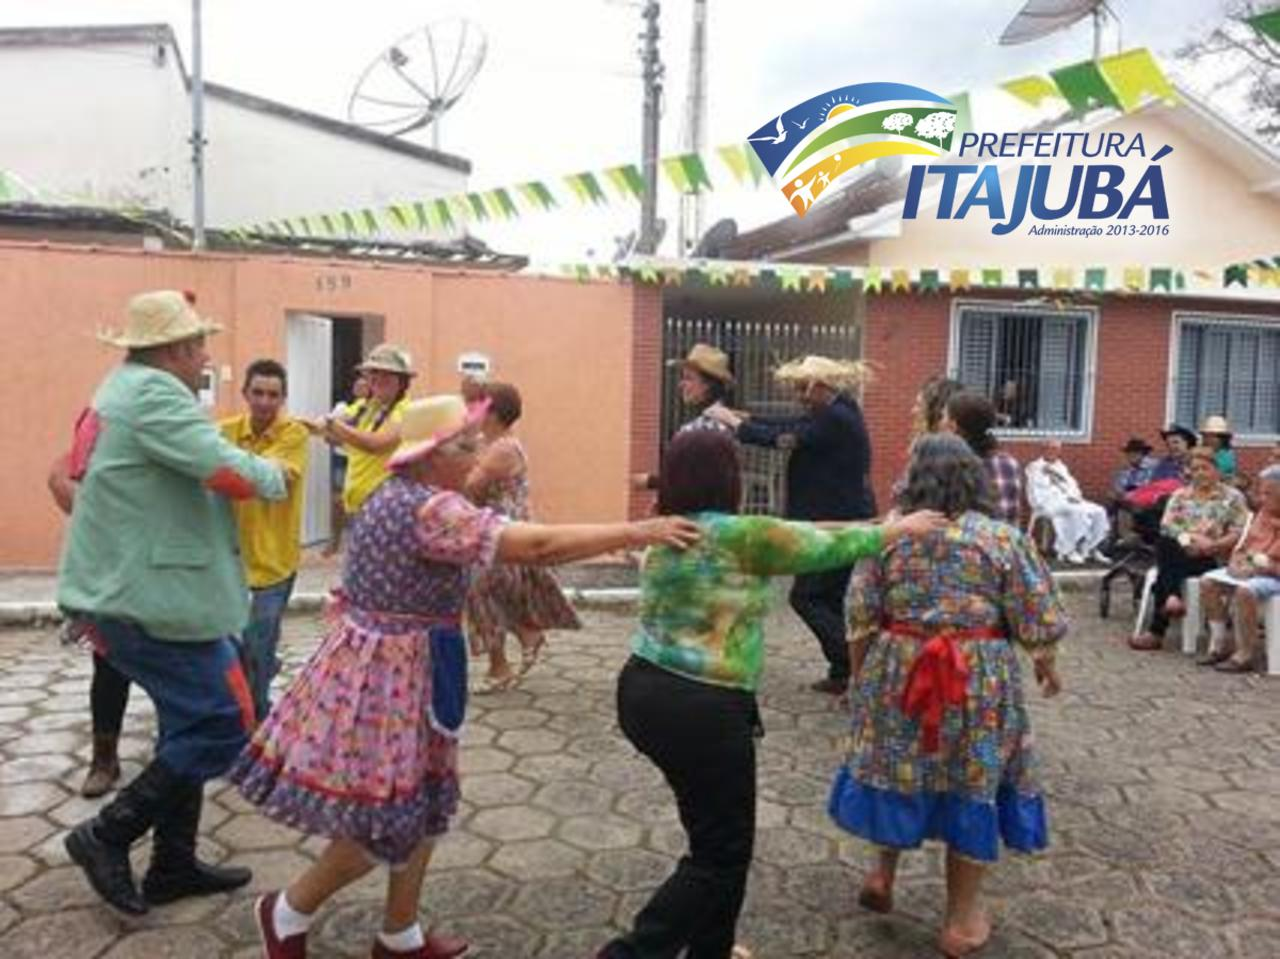 Festas julinas movimentam as comunidades itajubenses